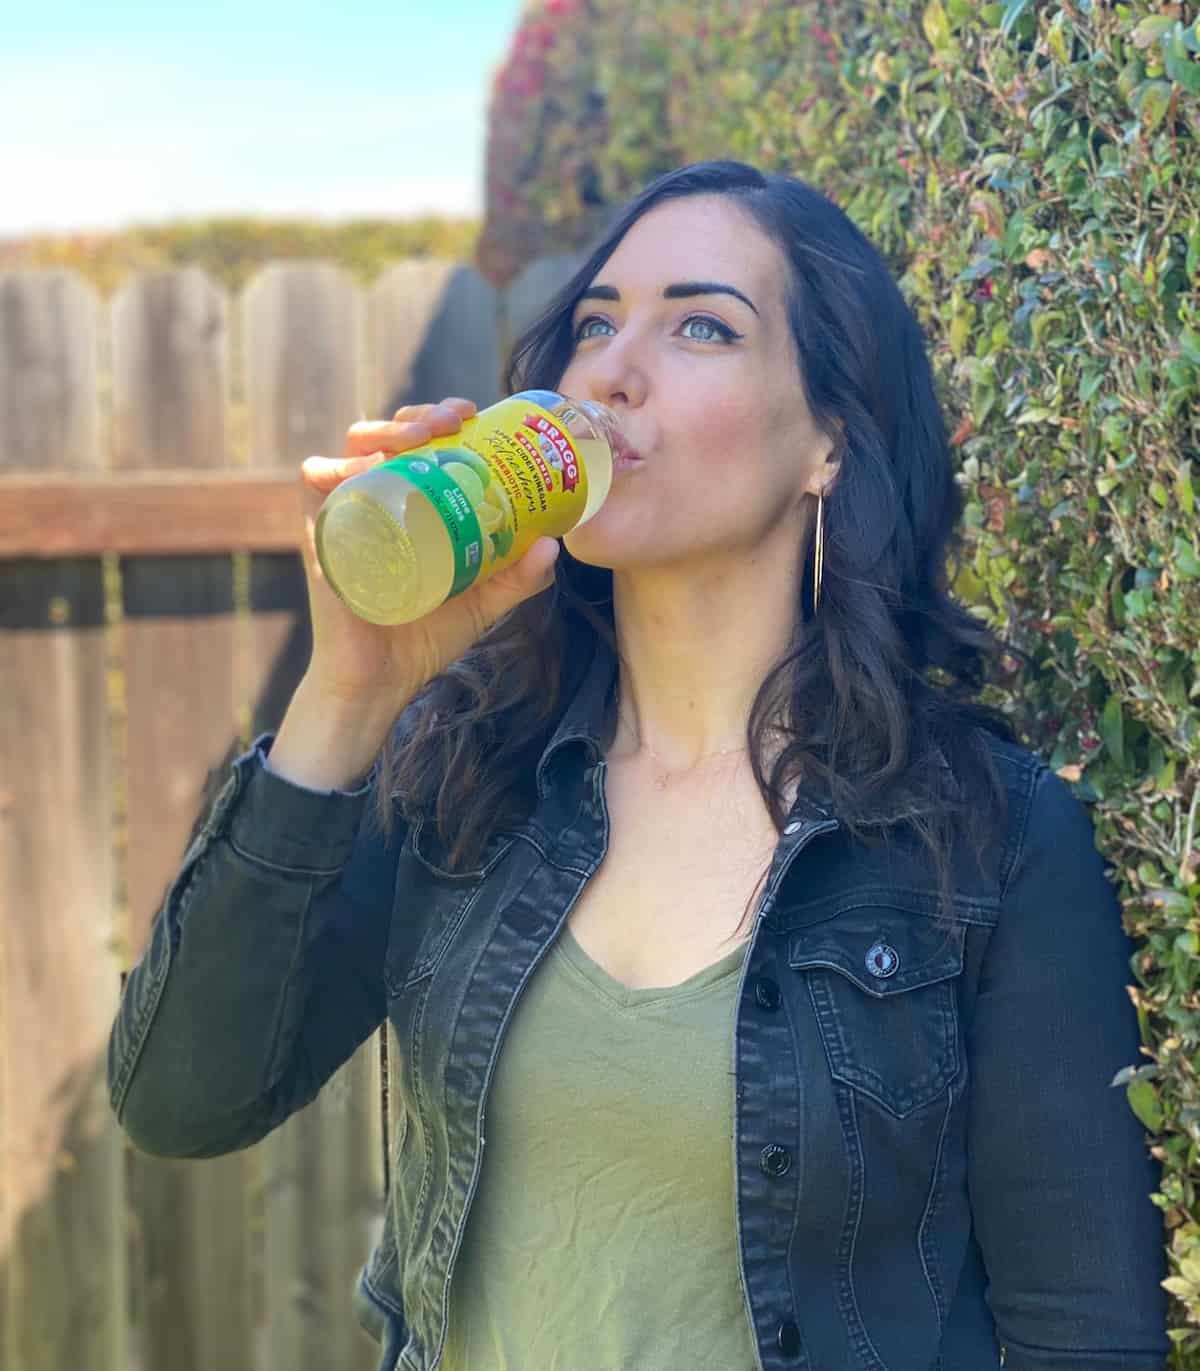 Dark haired woman with green shirt and black jean jacket standing outside drinking a drink